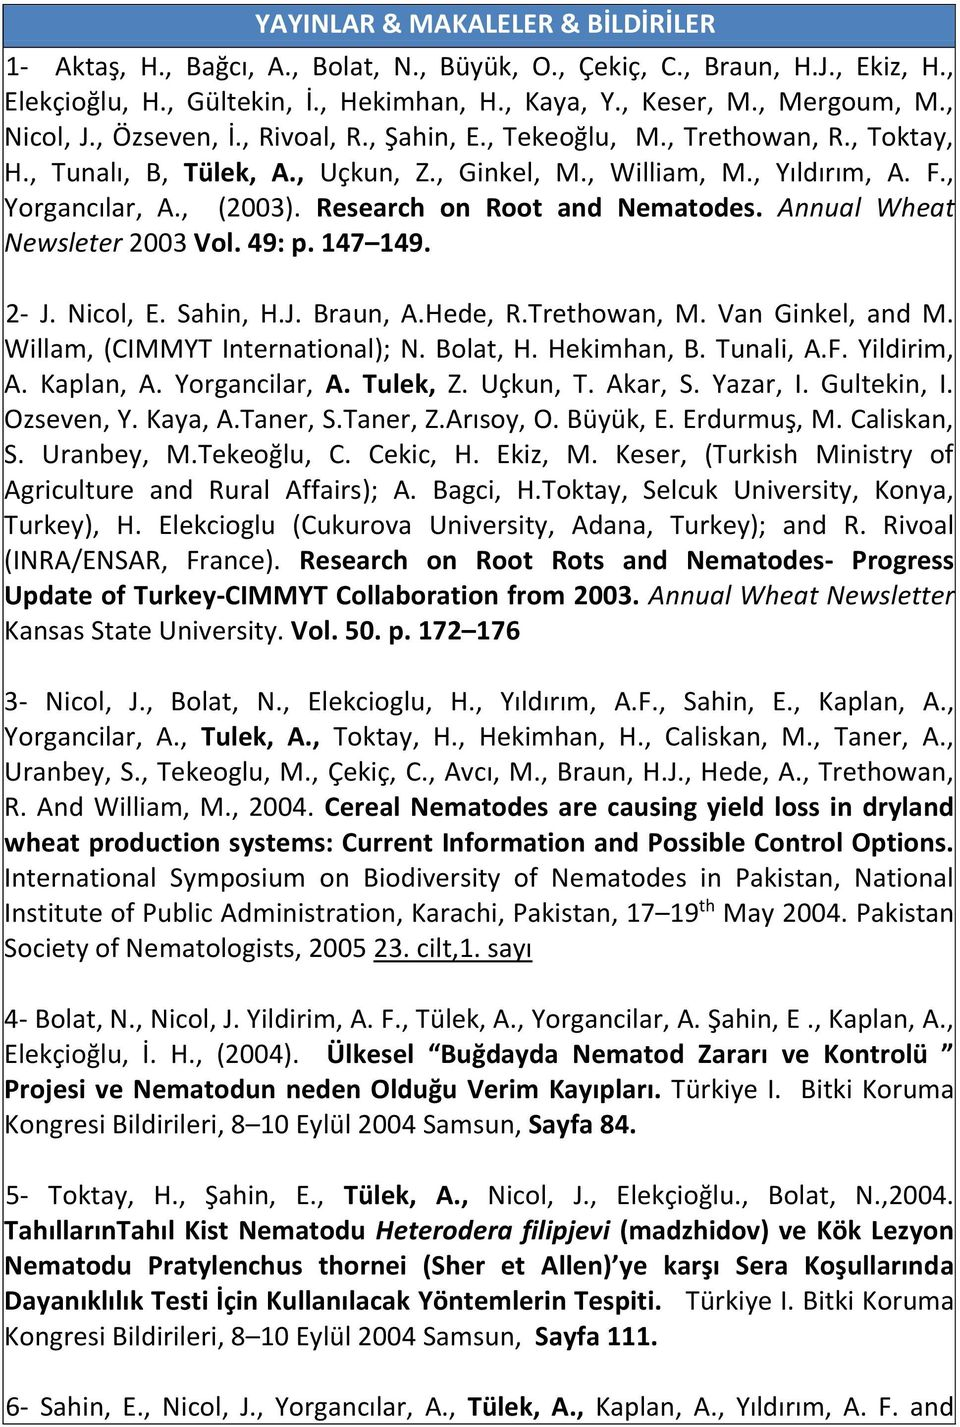 Research on Root and Nematodes. Annual Wheat Newsleter 2003 Vol. 49: p. 147 149. 2- J. Nicol, E. Sahin, H.J. Braun, A.Hede, R.Trethowan, M. Van Ginkel, and M. Willam, (CIMMYT International); N.